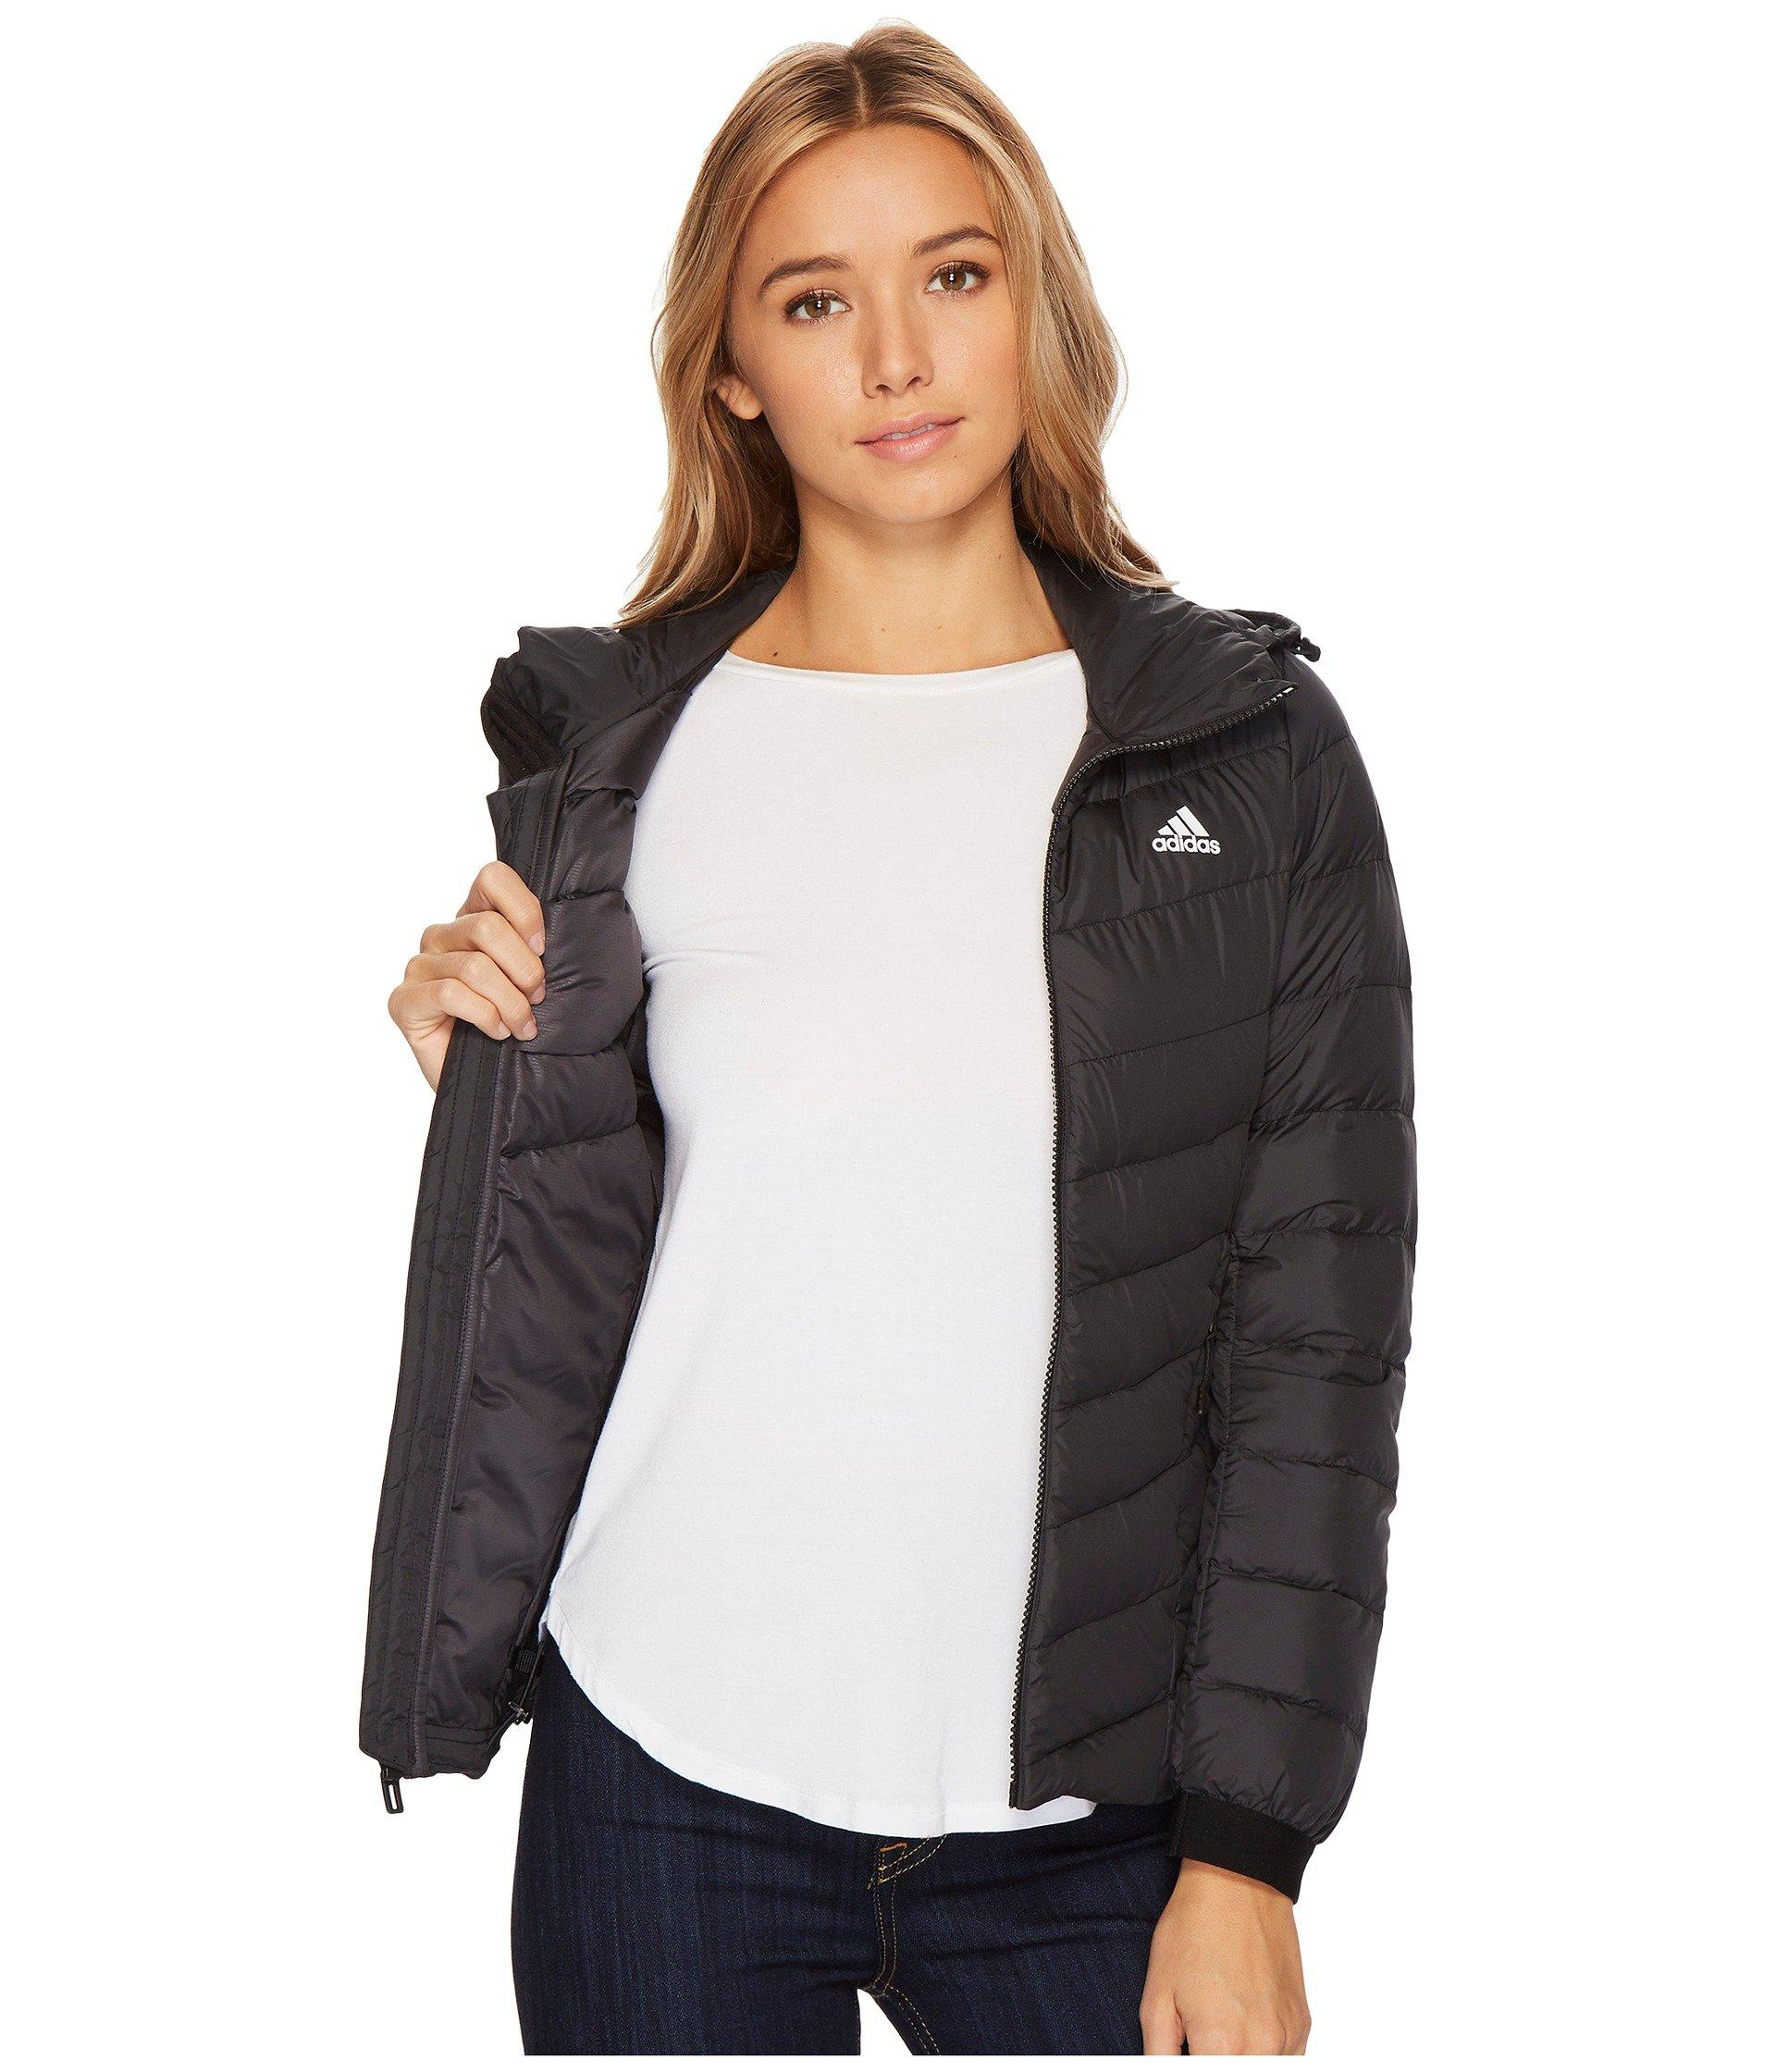 086eea3f6c41e adidas Originals Climawarm® Nuvic Jacket in Black - Lyst